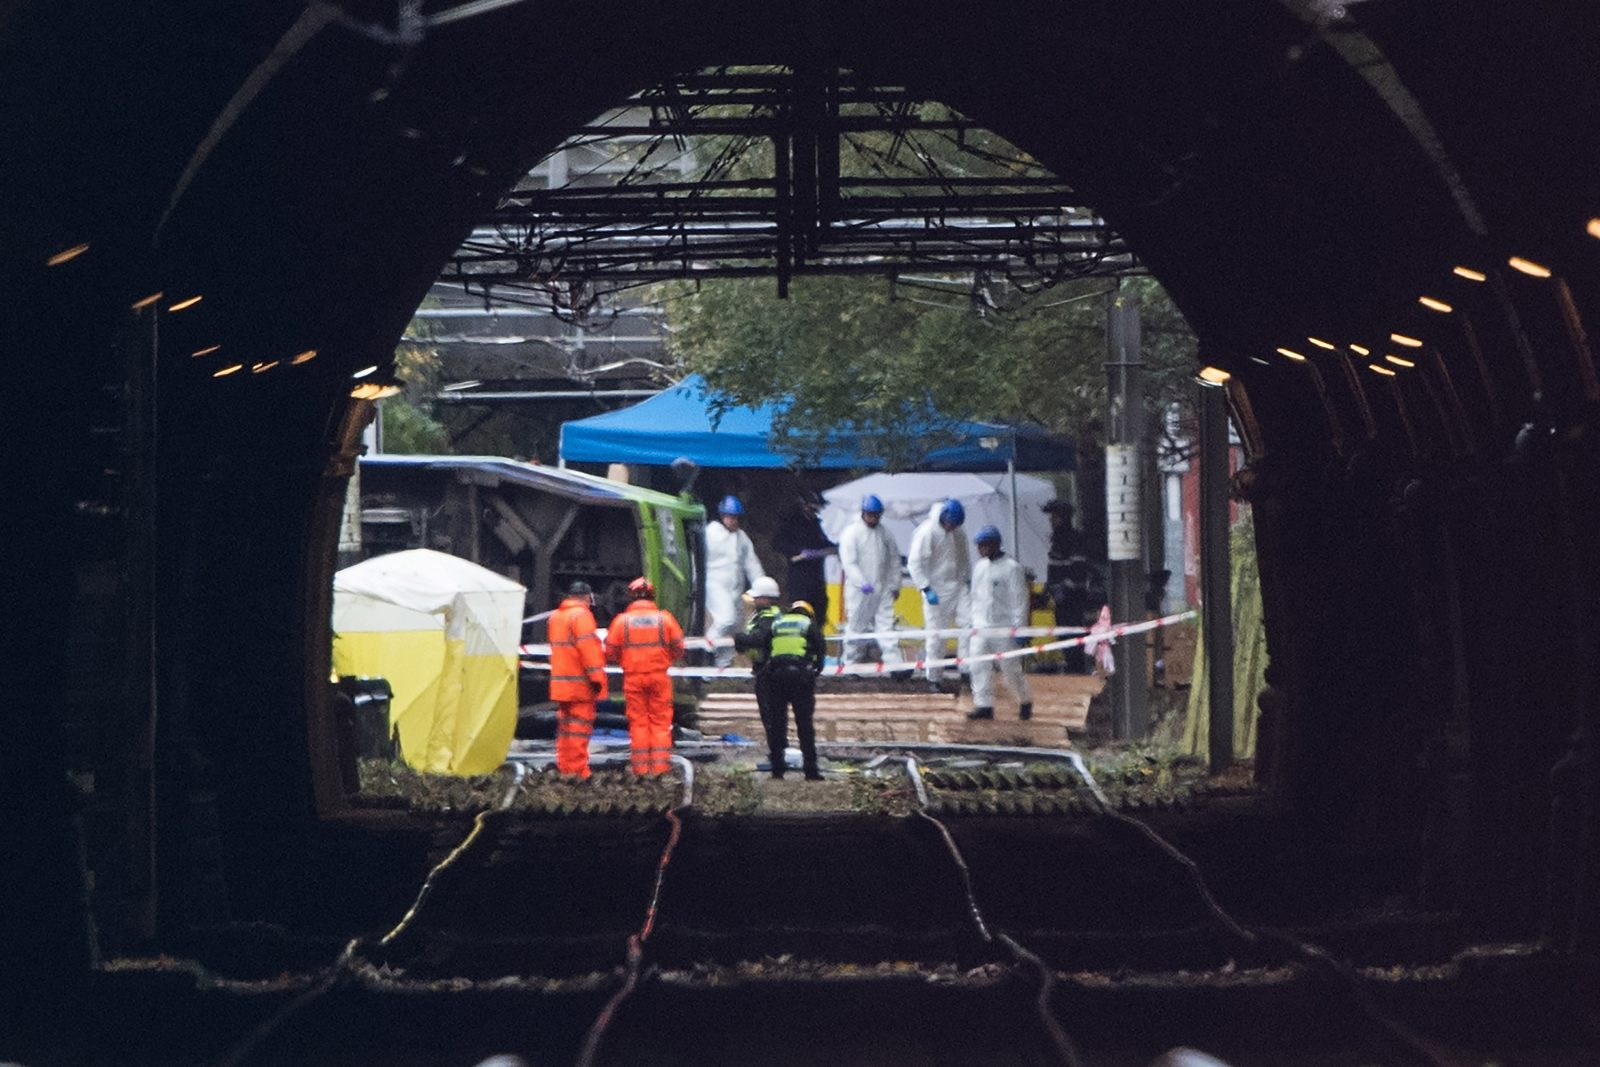 TfL aware of Croydon tram fatigue problem two years before deadly crash